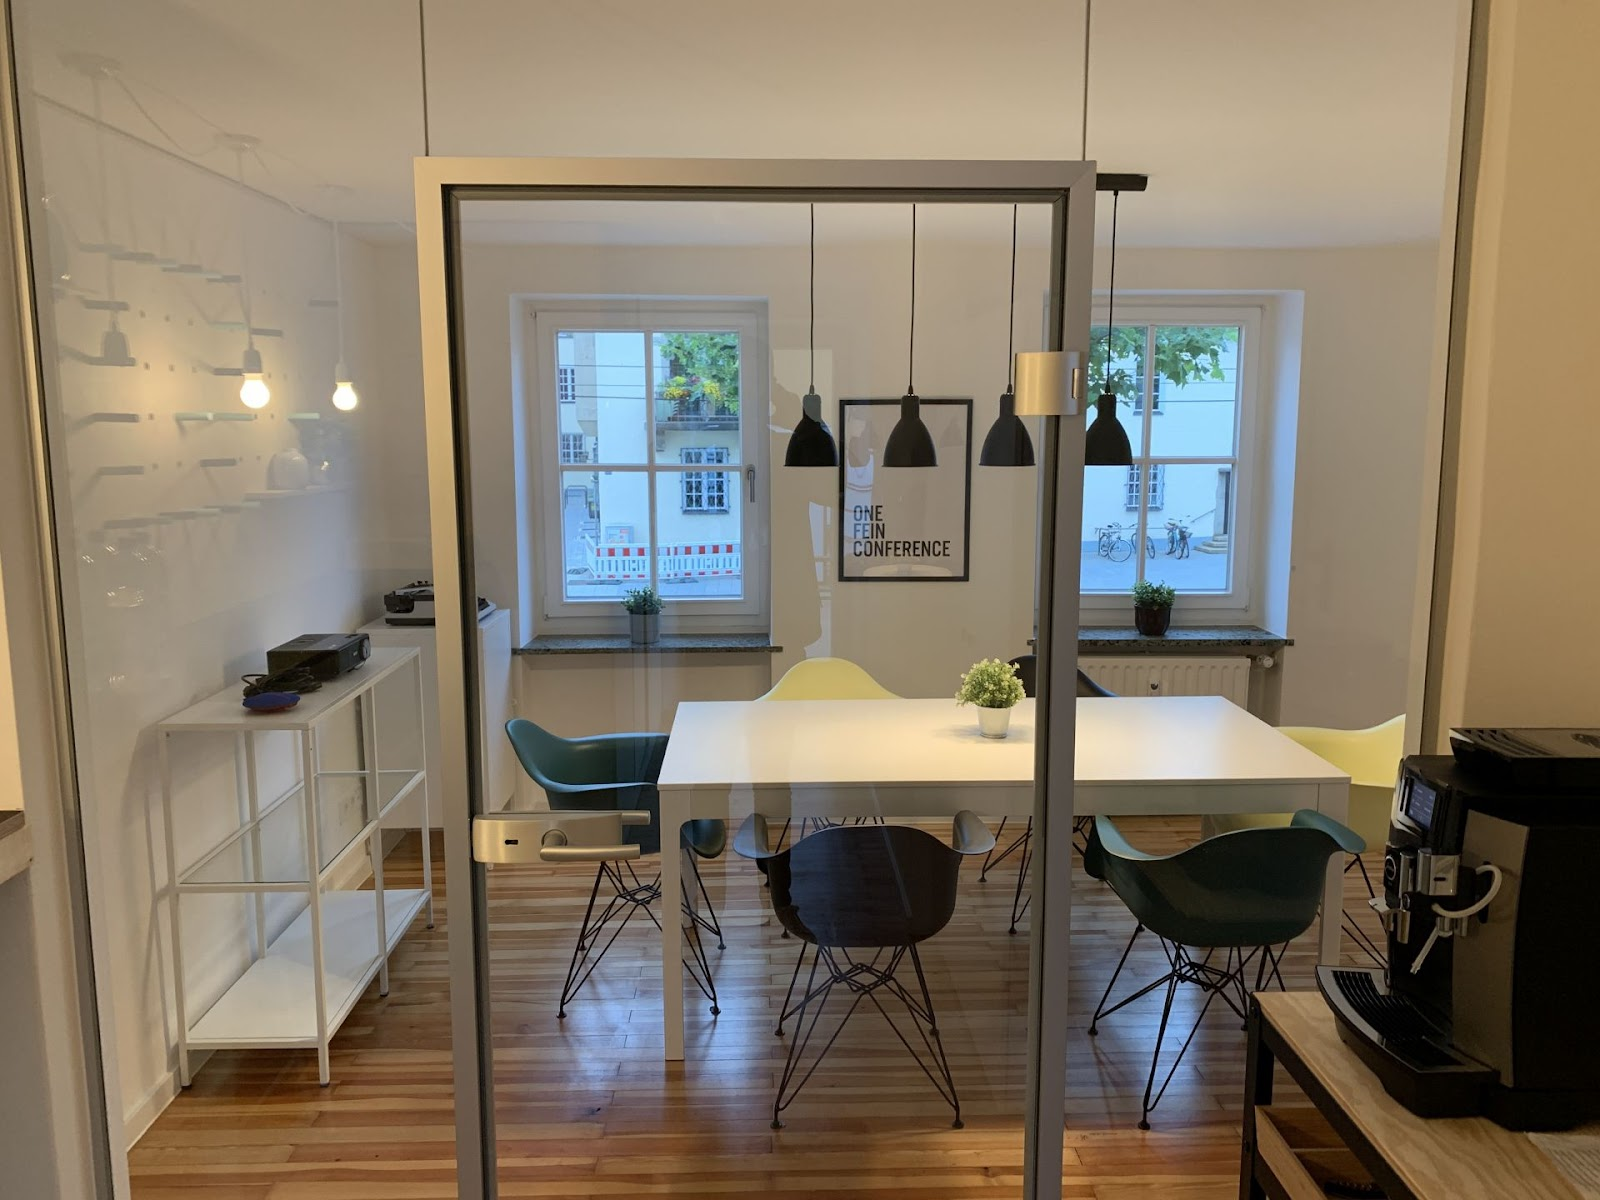 Coworking Space Munich: 9 Best Spaces with Pricing, Amenities & Location [2021] 27